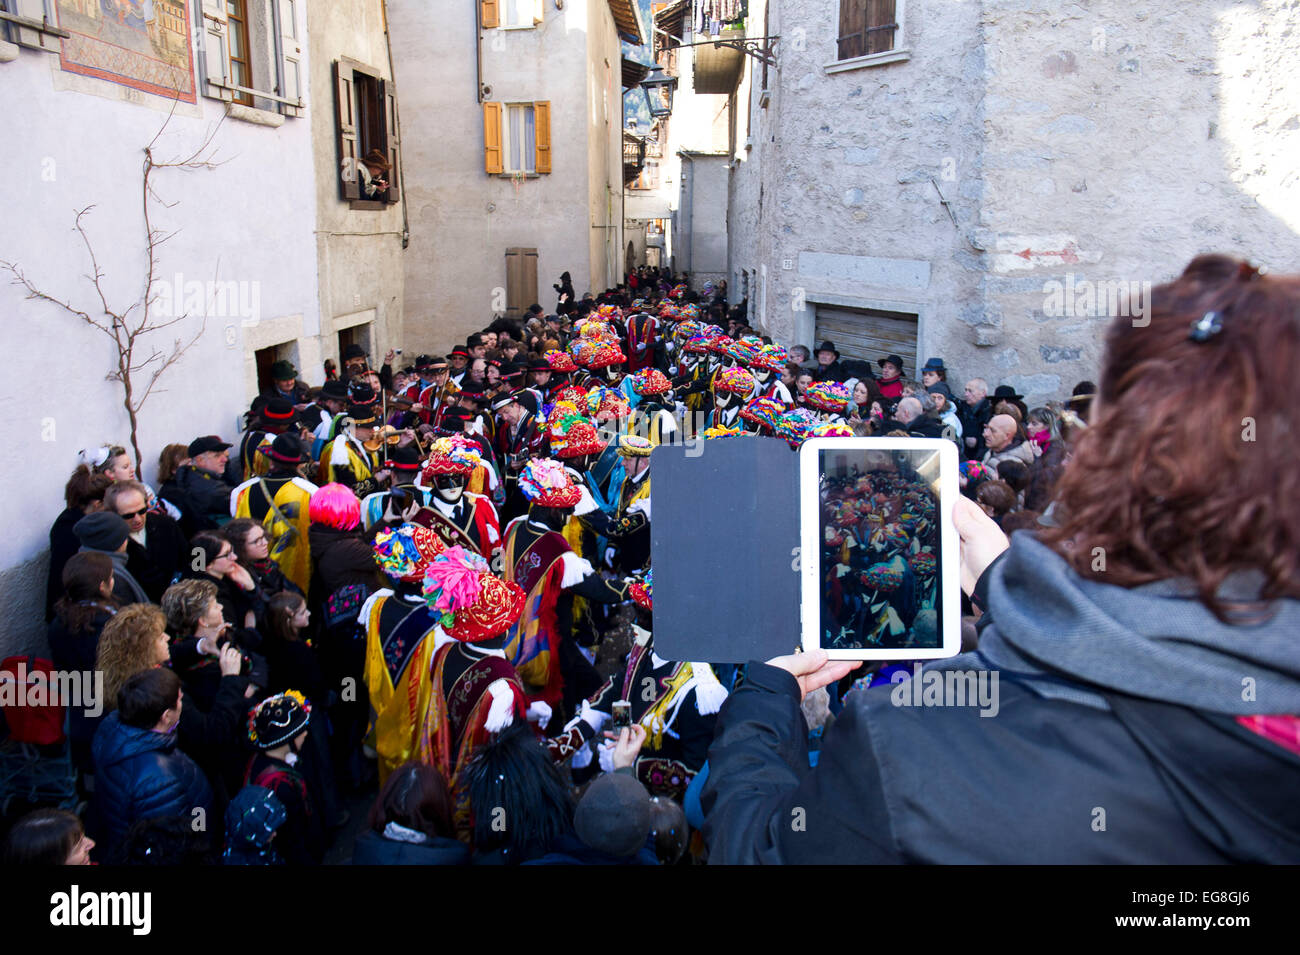 Italy, Lombardy, Bagolino, Carnival of Bagolino. The masks dating back to the sixteenth century dance on the streets. - Stock Image